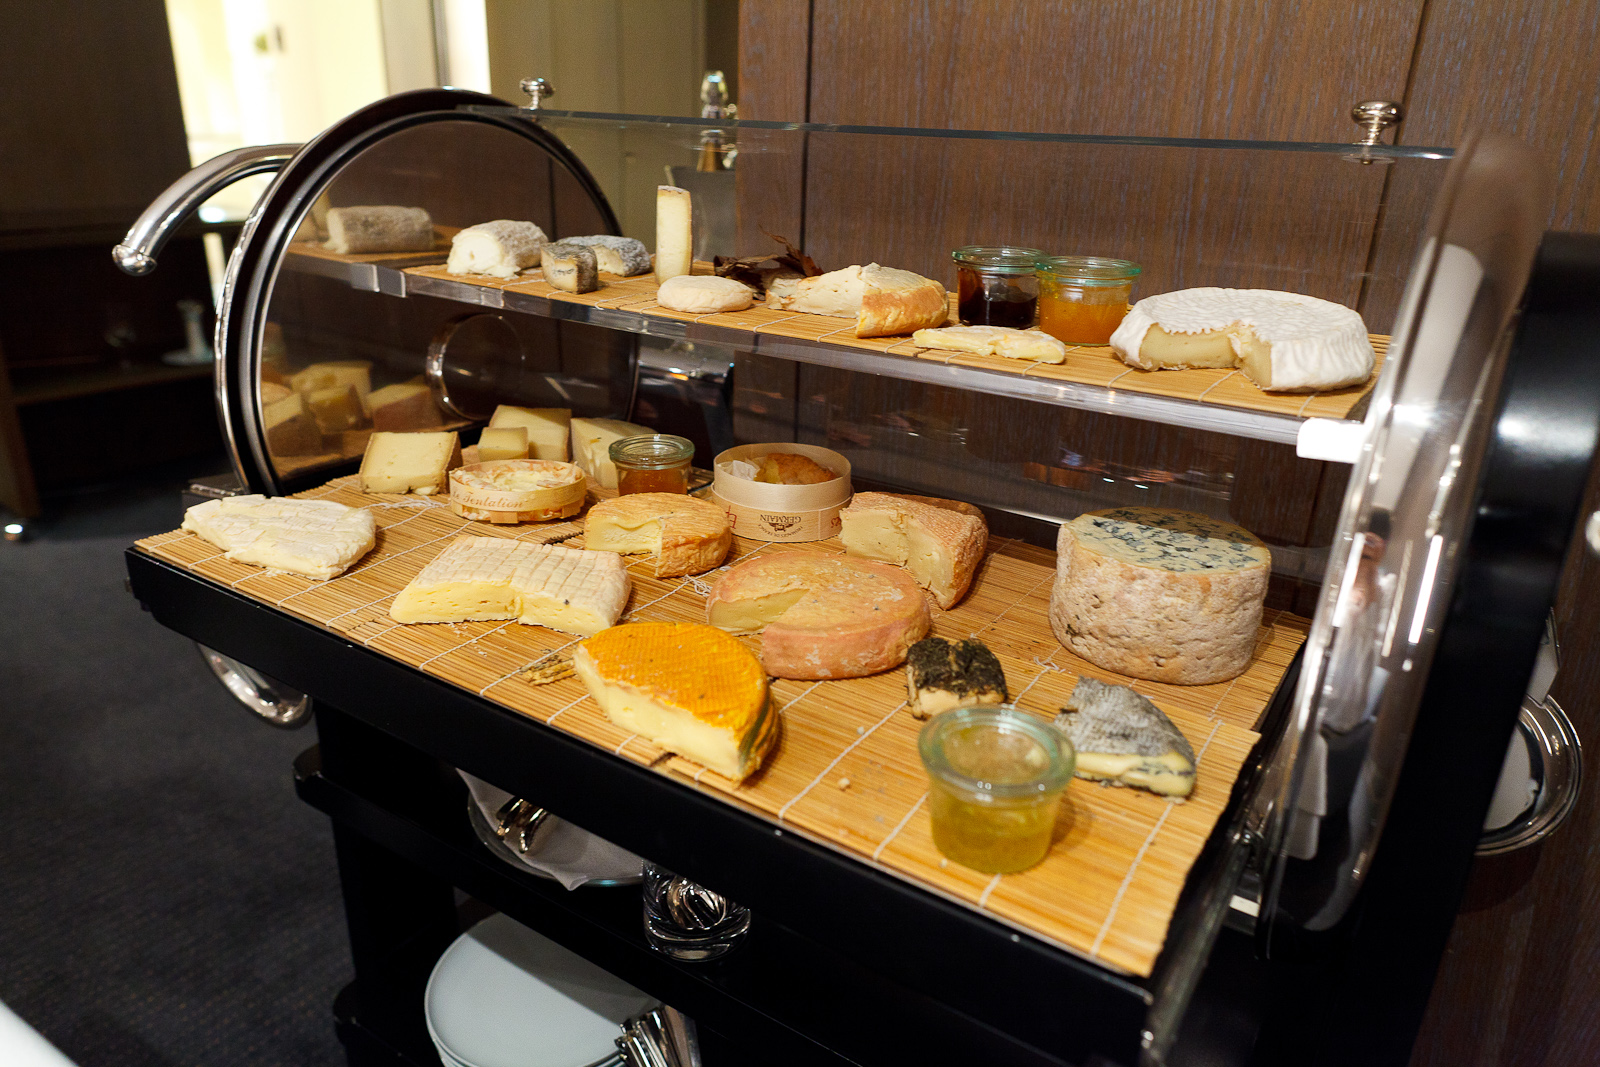 Cheese course: the cheese cart